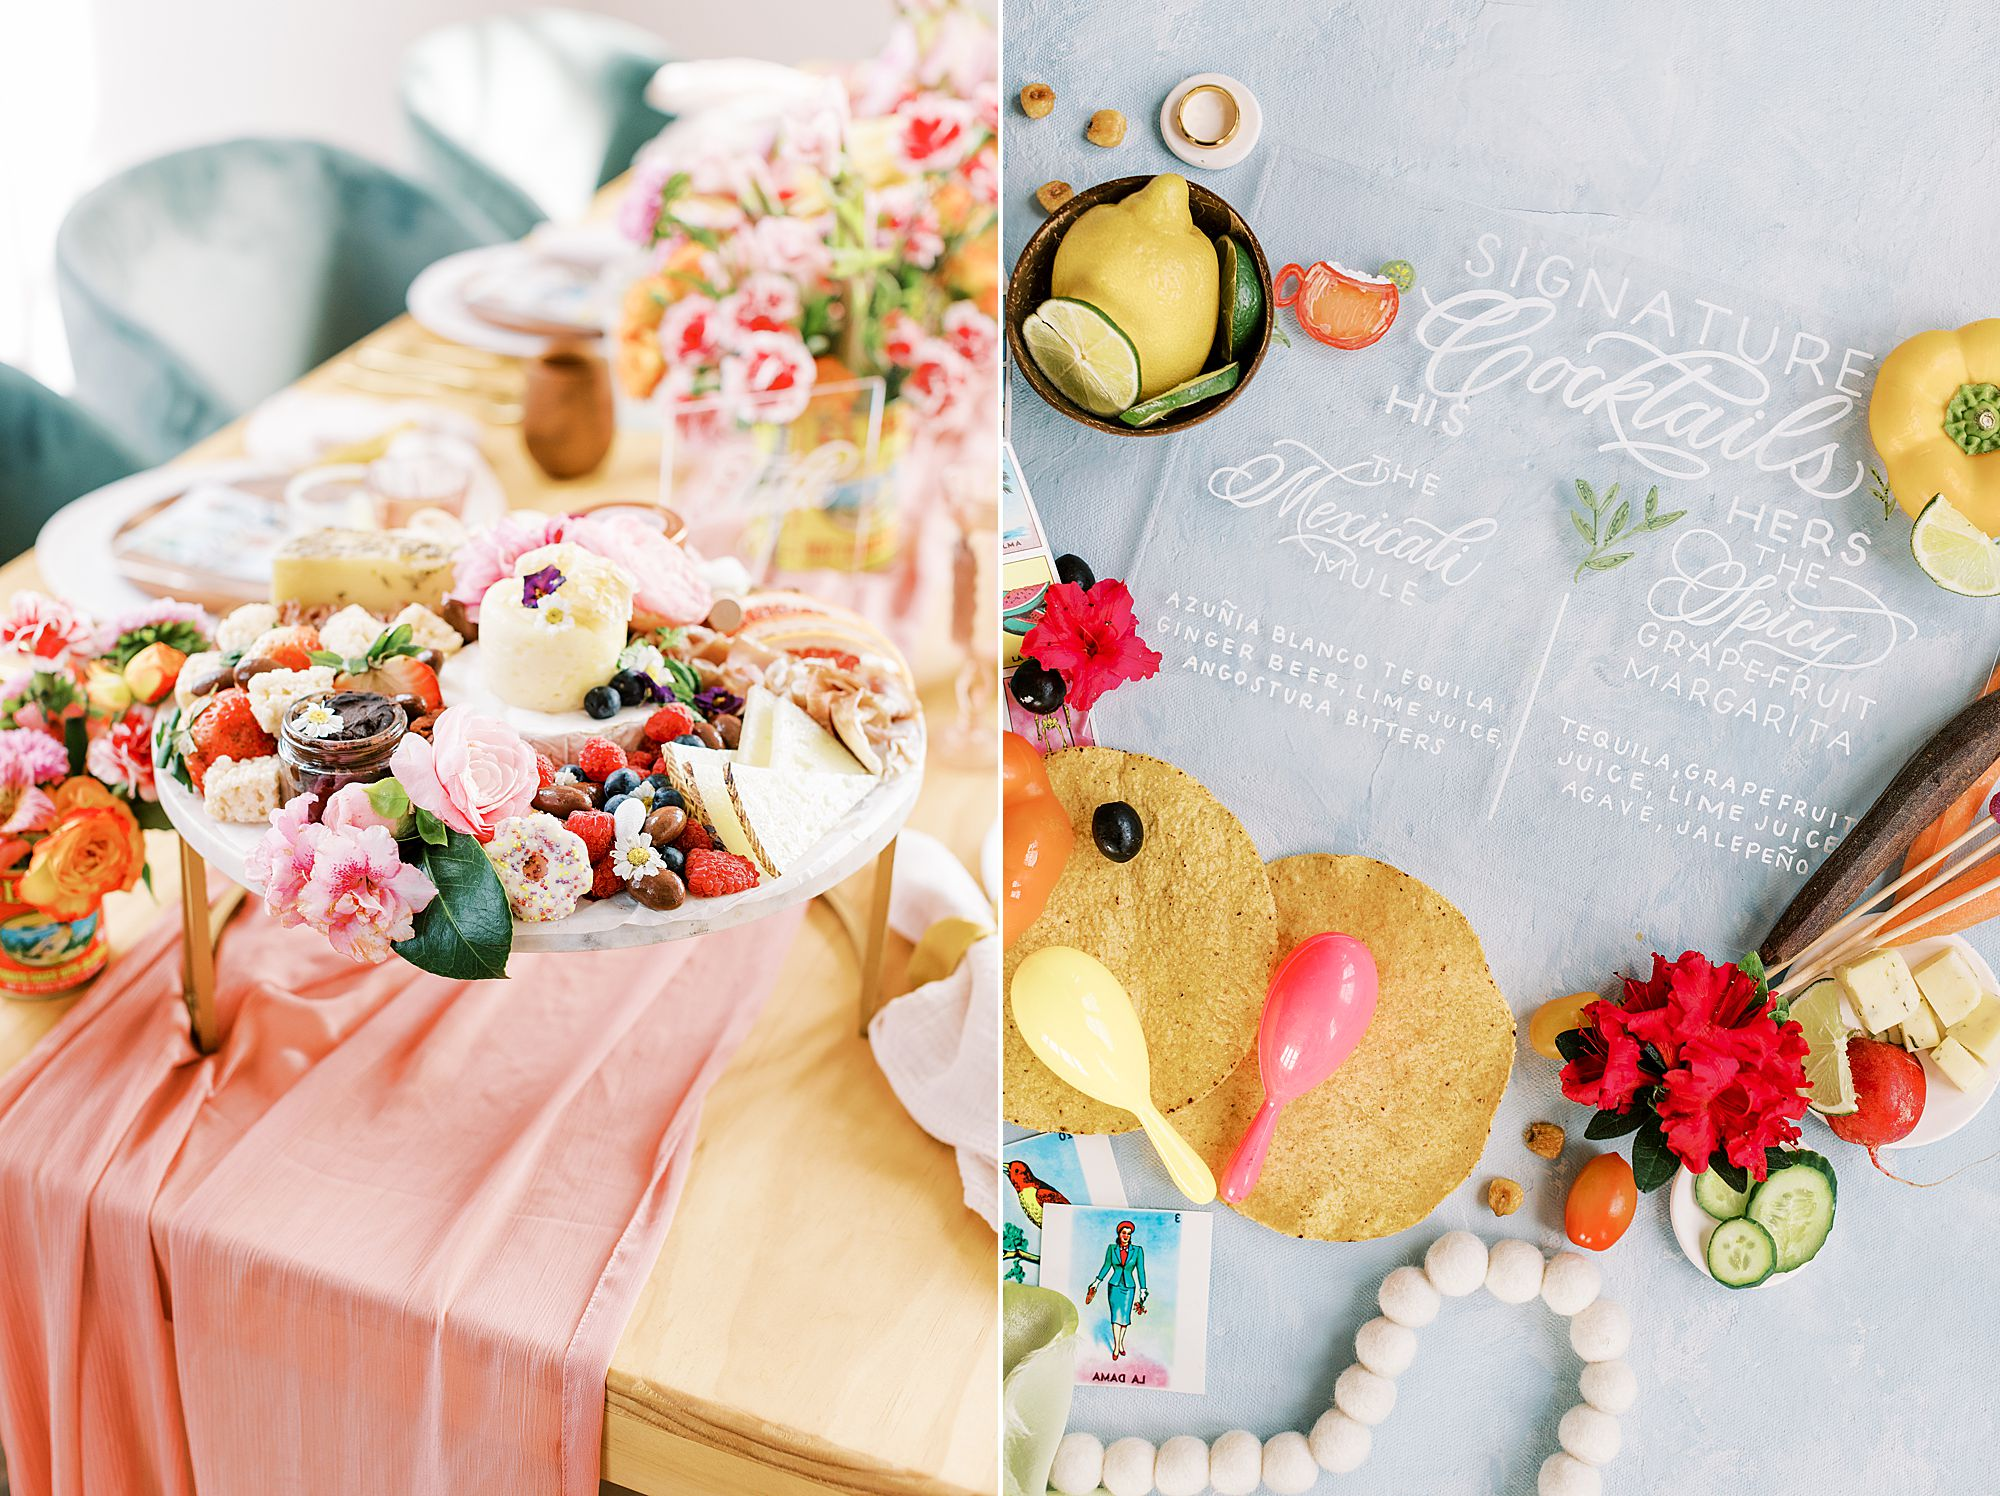 Cinco De Mayo Inspiration for Your FIesta - Party Crush Studio and Ashley Baumgartner_0046.jpg